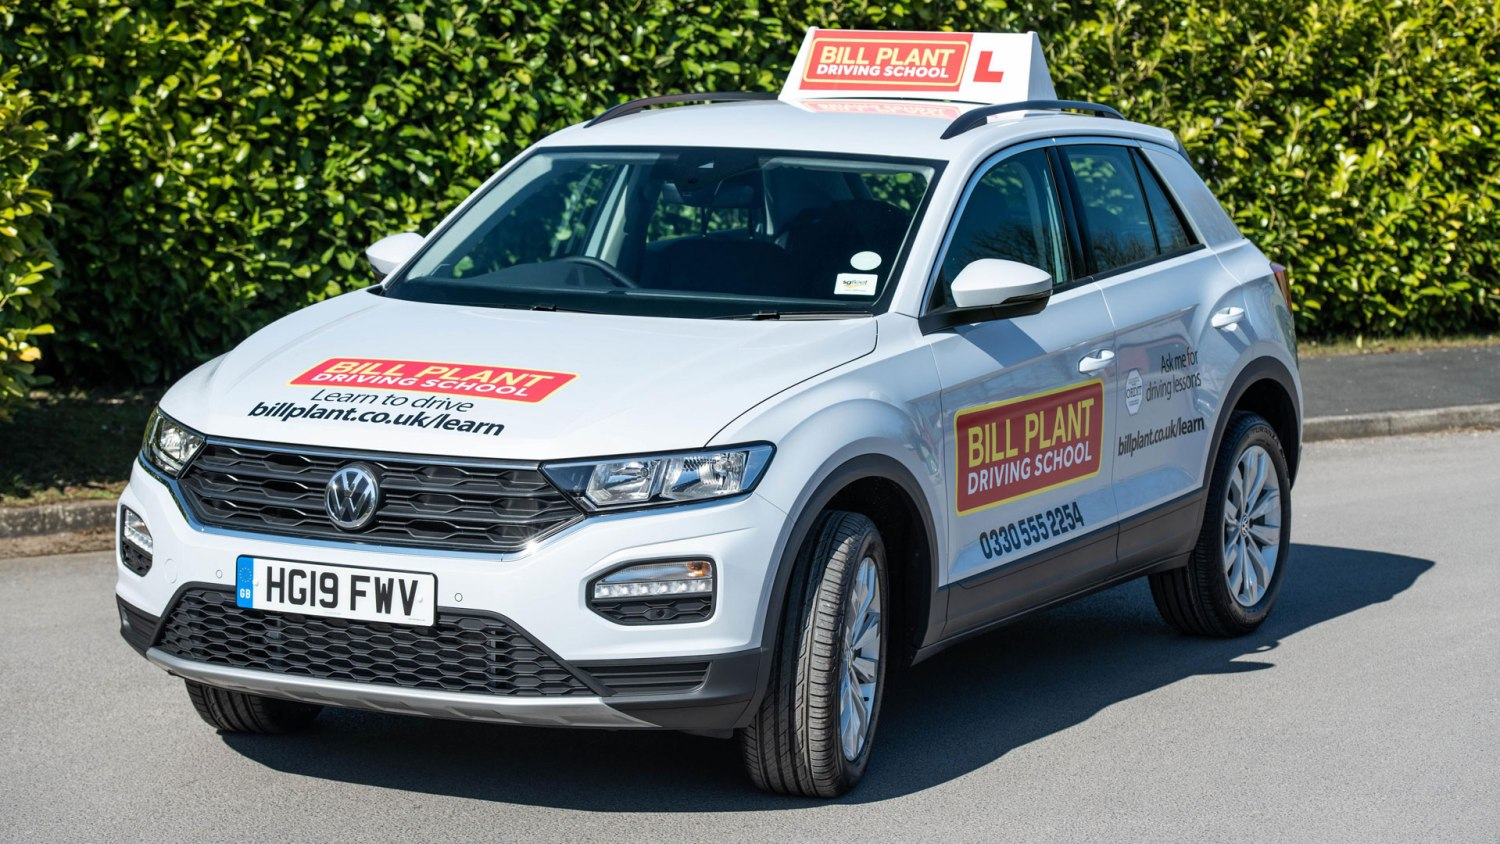 Bill Plant Driving School Volkswagen T-Roc